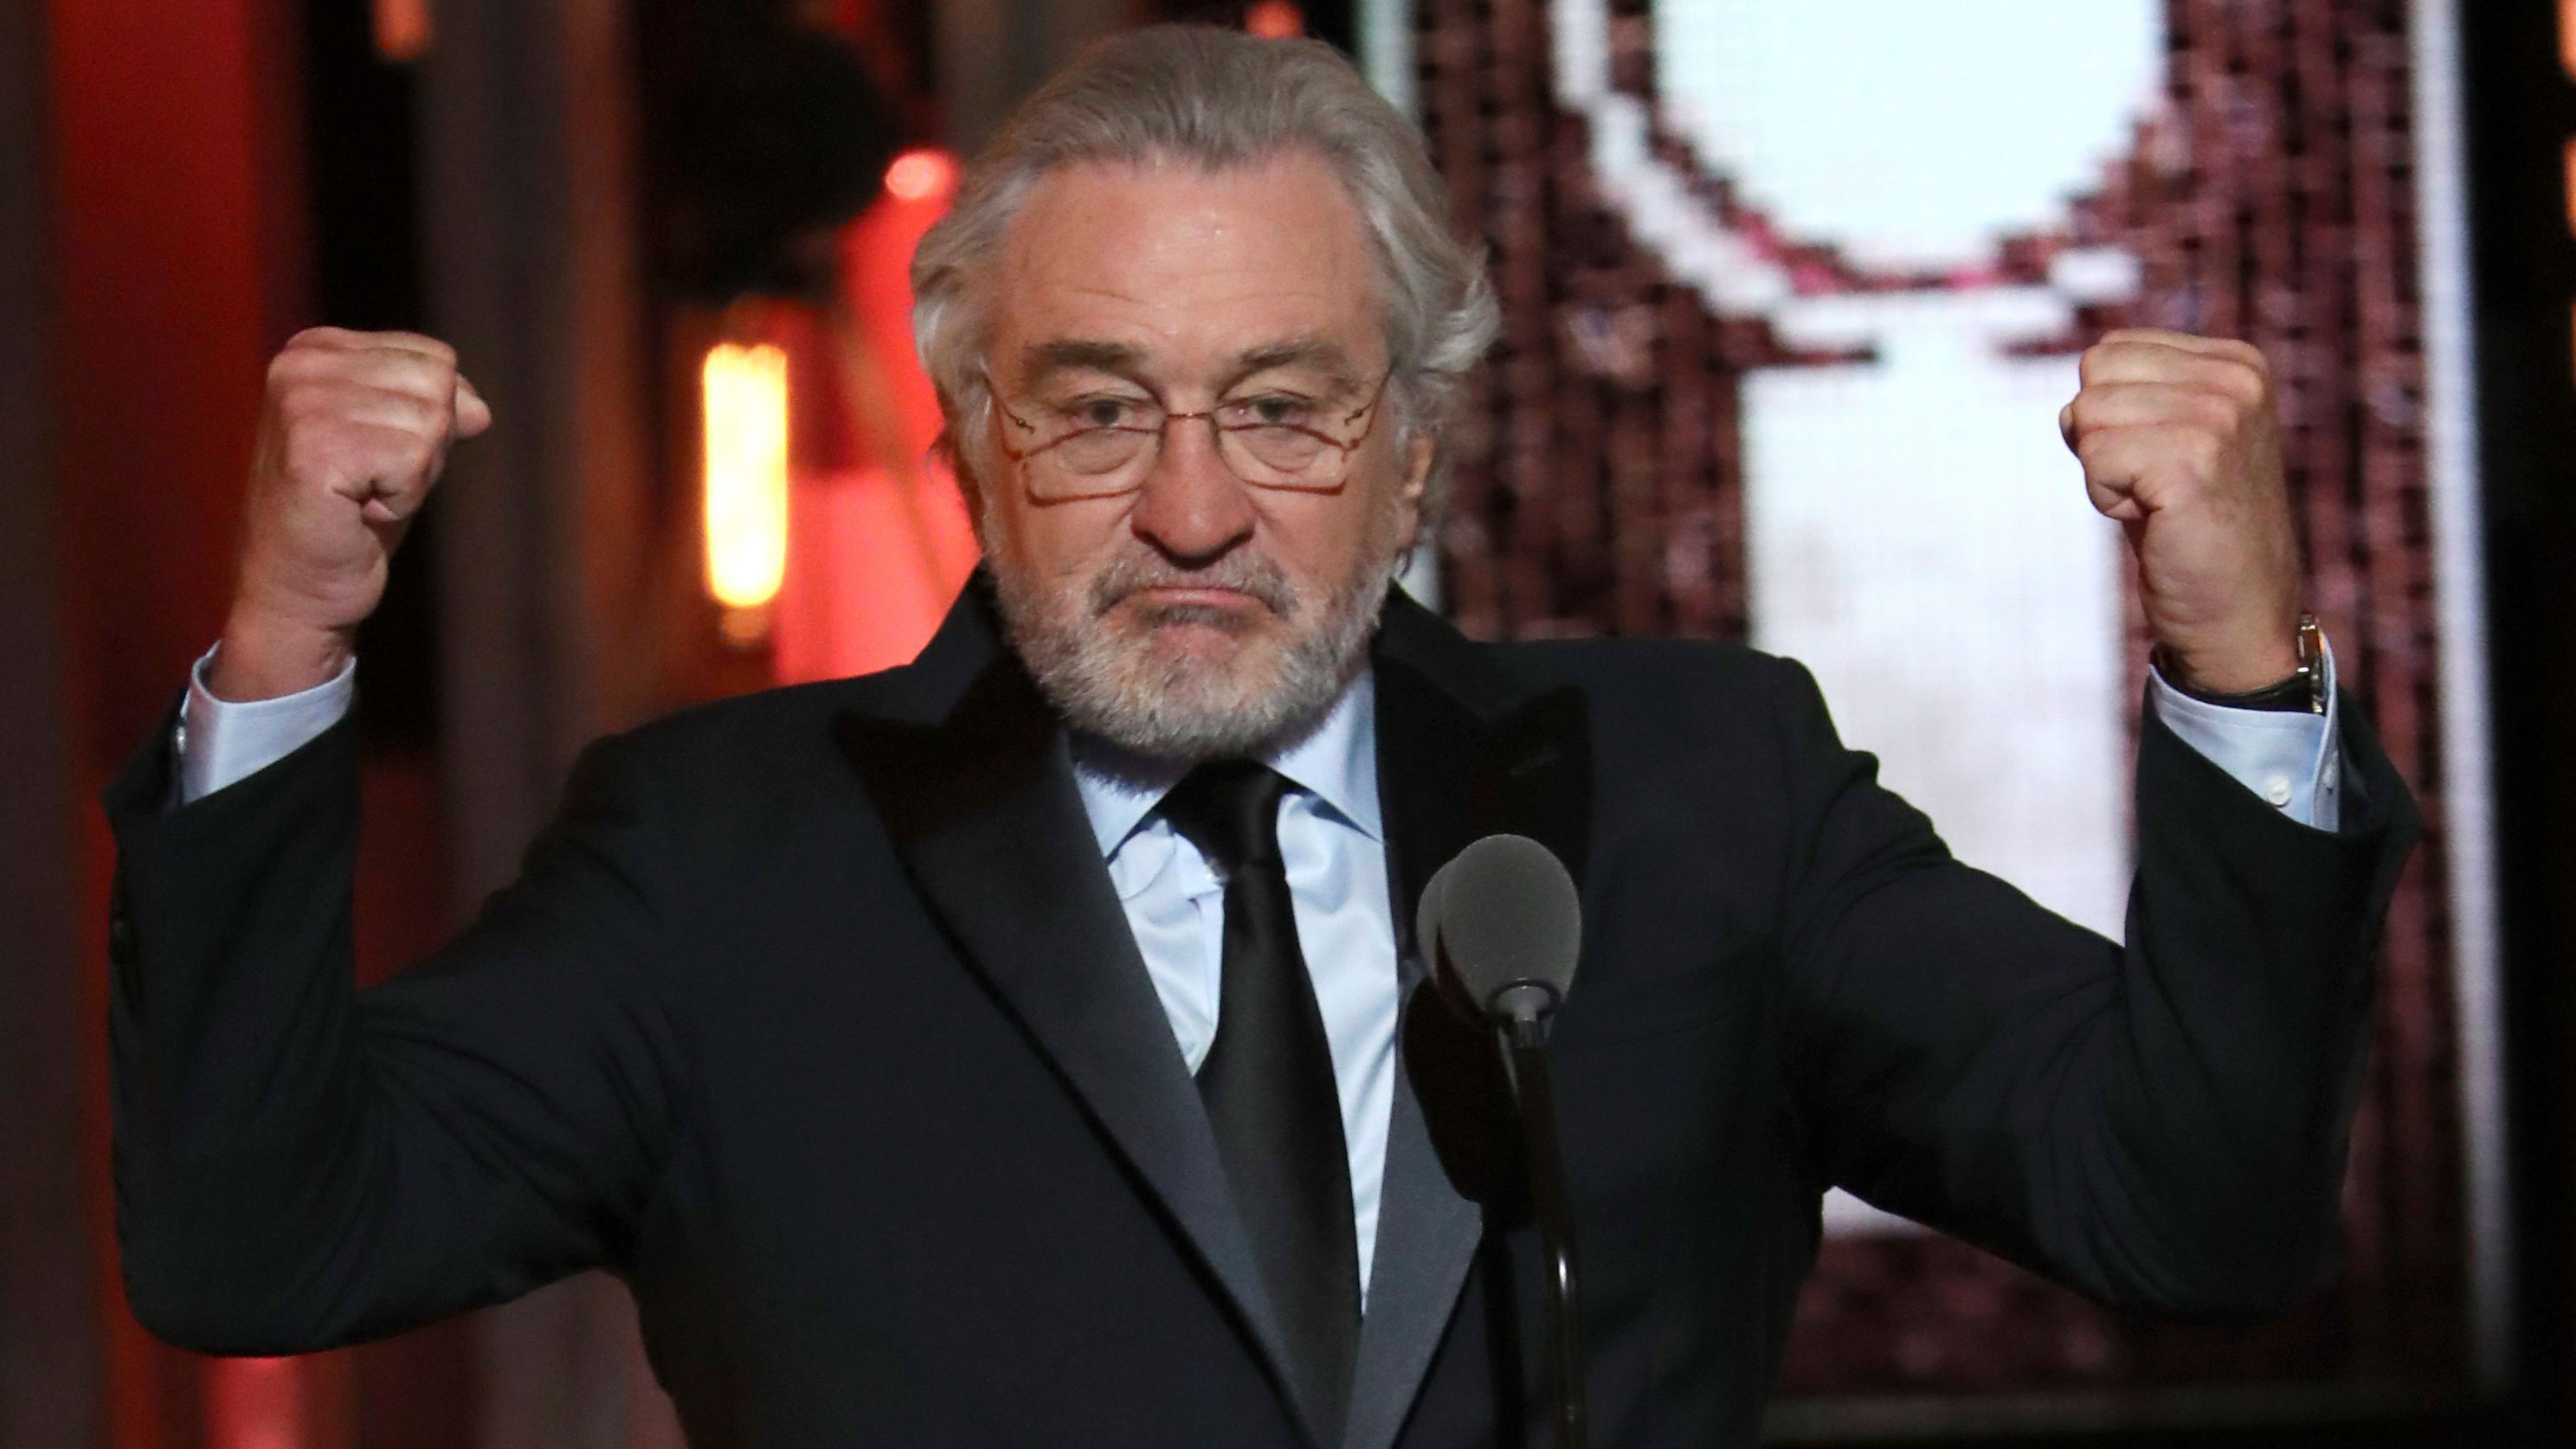 Robert De Niro Says 'F-k Trump' Live at Tony Awards 2018